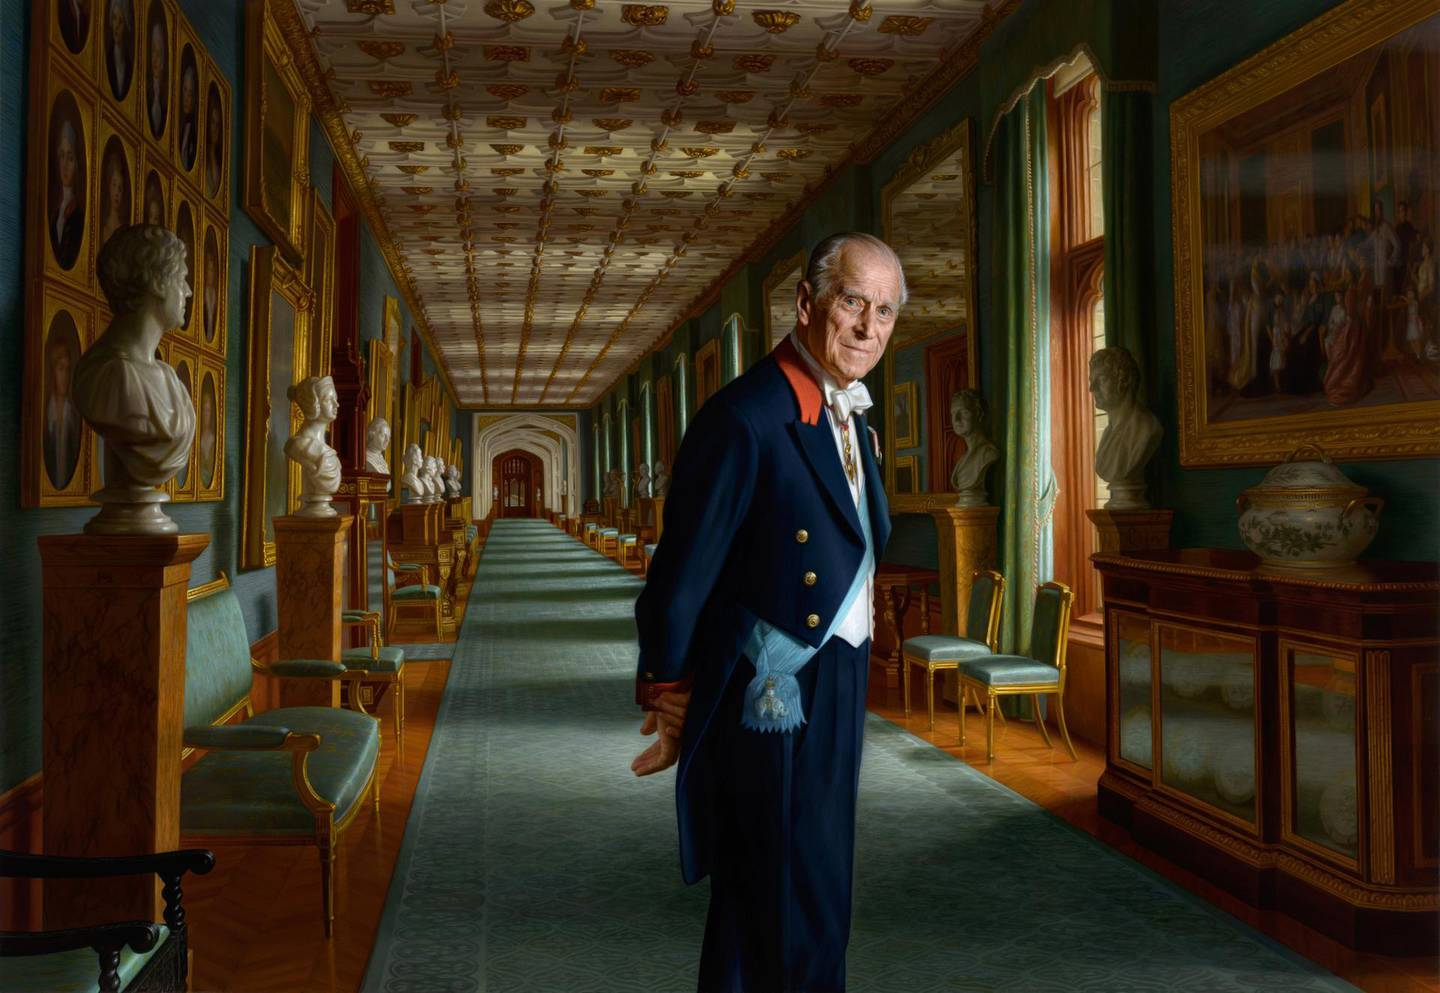 Prince Philip, Duke Of Edinburgh Dies at the Age of 99 announced on April 9,2021. UNITED KINGDOM - UNDATED:  (NOTE TO EDITORS: This handout photo may only be used in for editorial reporting purposes for the contemporaneous illustration of events, things or the people in the image or facts mentioned in the caption. Reuse of the picture may require further permission from the copyright holder.)   In this undated handout issued by Buckingham Palace of a painting by Australian born artist Ralph Heimans, A painting of Prince Philip, Duke of Edinburgh is photographed in the year of his retirement from public engagements set in The Grand Corridor at Windsor Castle with him depicted wearing the sash of the Order of the Elephant, Denmark's highest-ranking honour in 2017 in England. (Photo by Ralph Heimans/Buckingham Palace/PA Wire via Getty Images) Getty Images provides access to this publicly distributed image for editorial purposes and is not the copyright owner. Additional permissions may be required and are the sole responsibility of the end user.